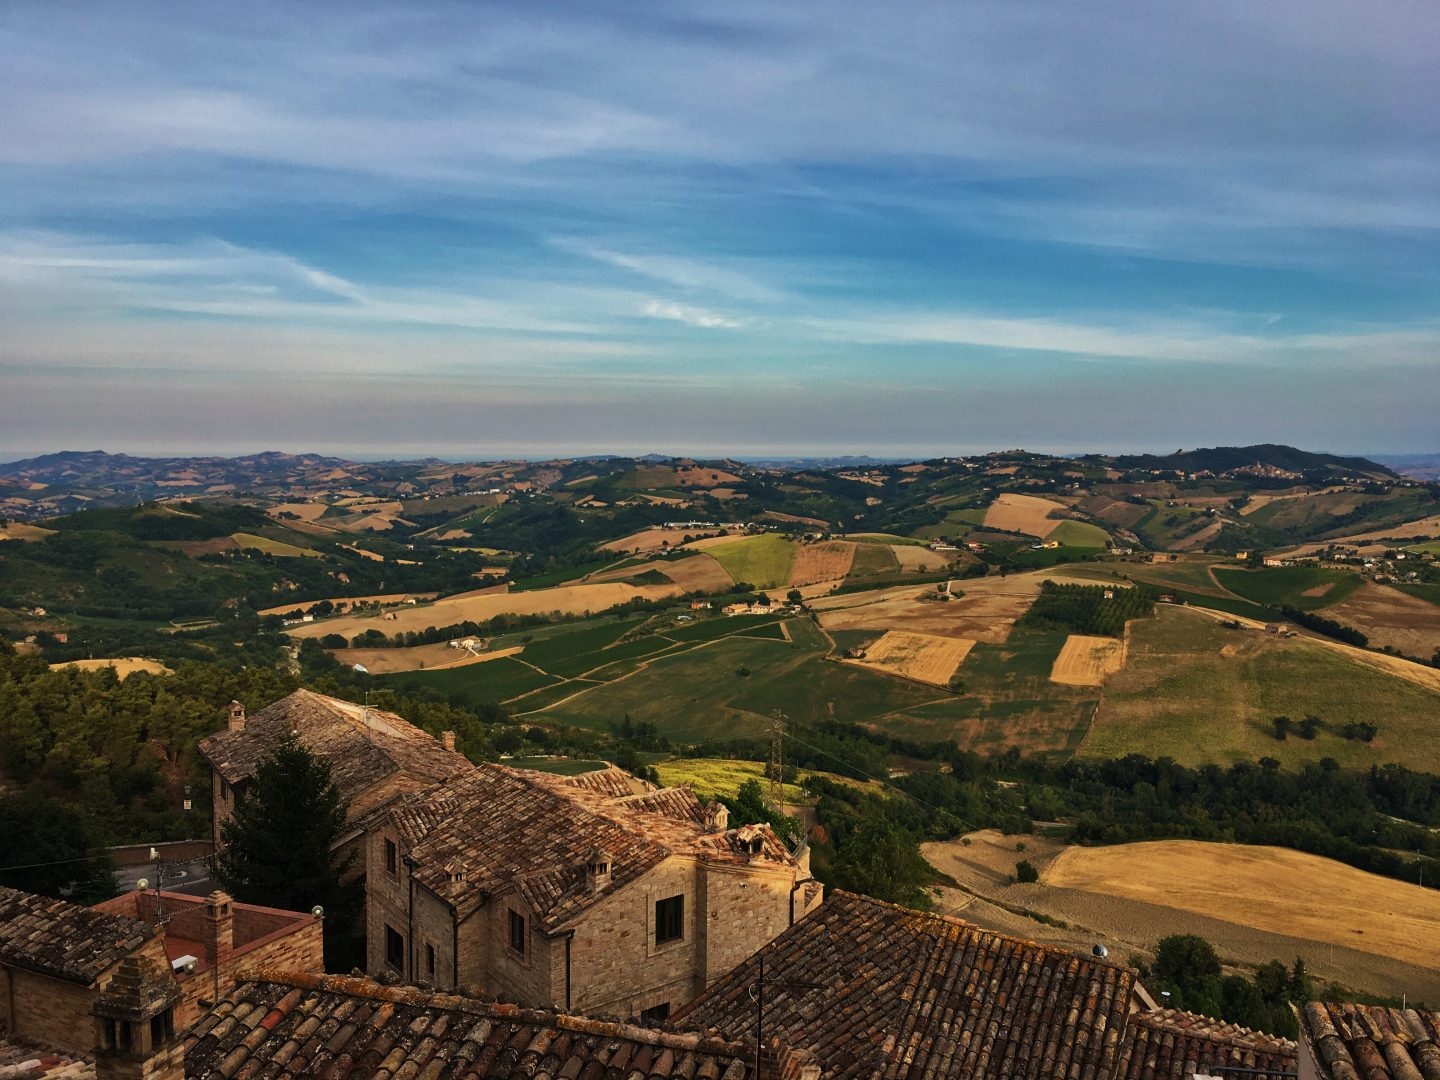 Family holiday to Italy: Tuscany, Umbria, Le Marche